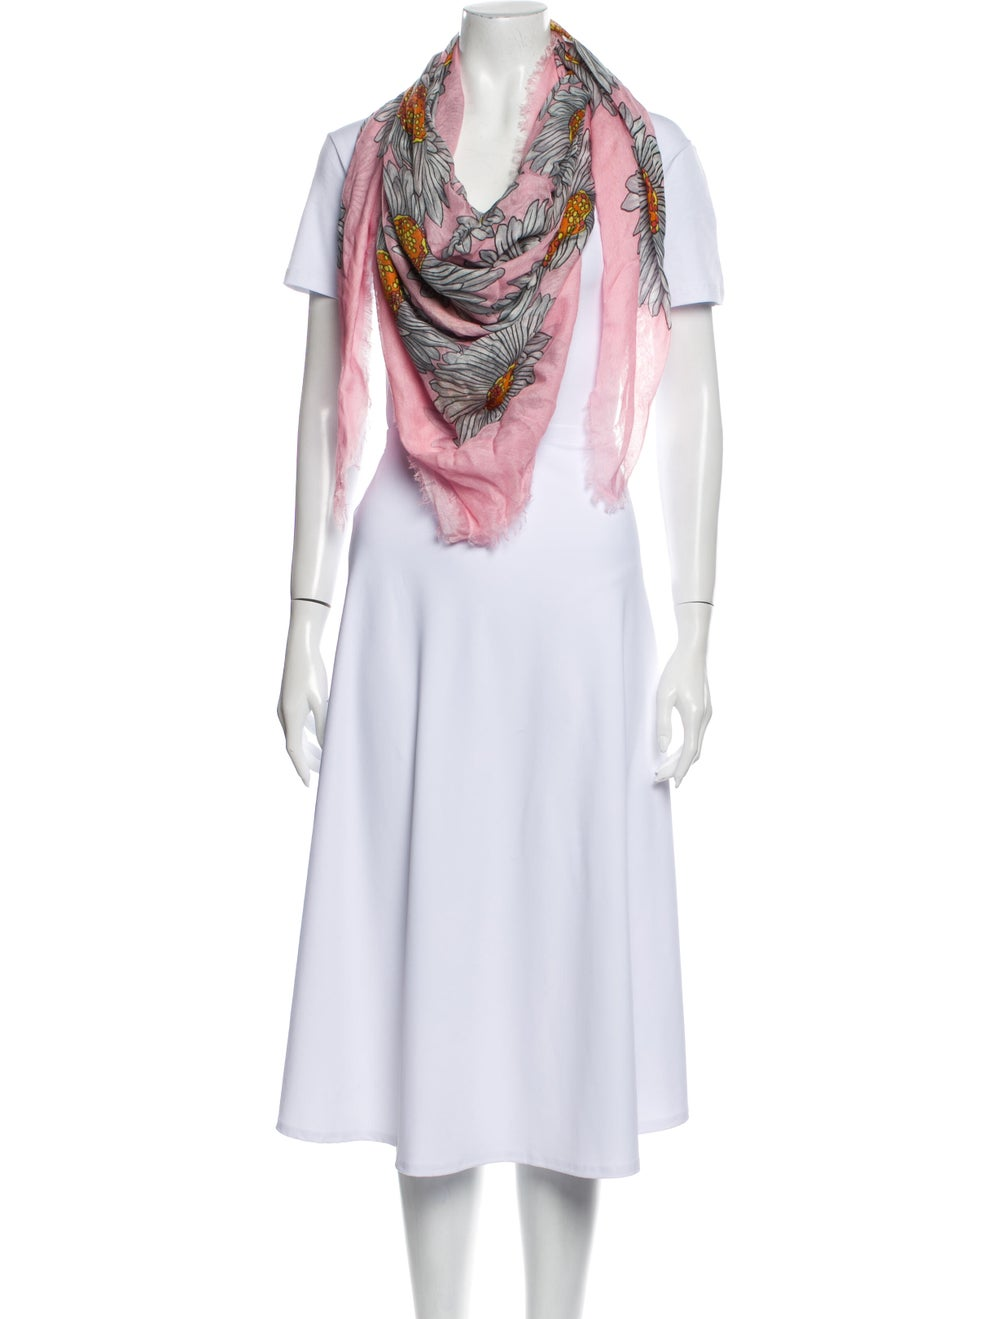 Gucci Floral Print Scarf Pink - image 3